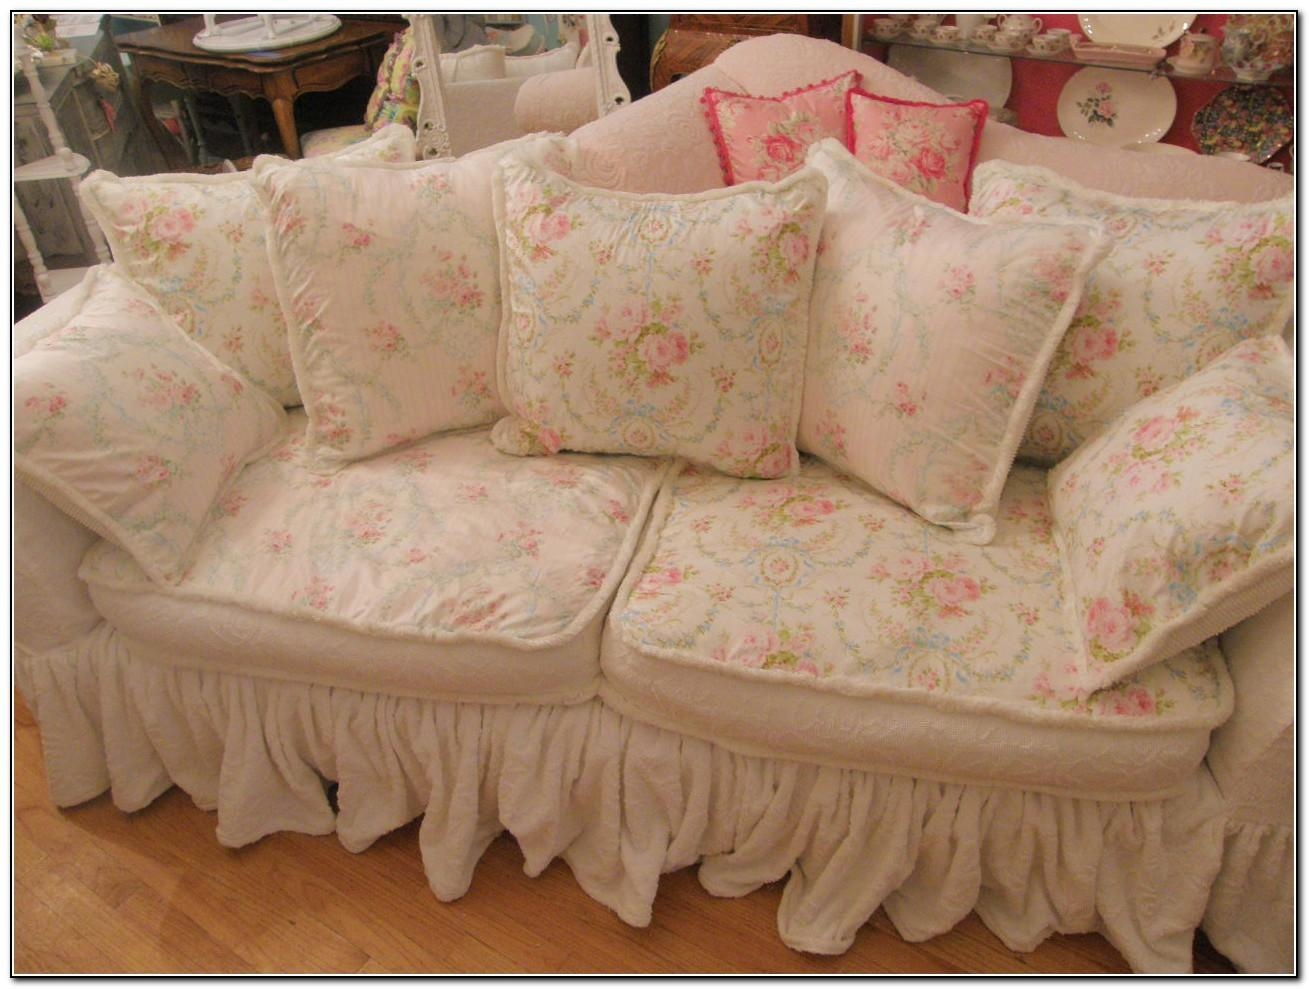 Shabby Chic Sofa Covers – Sofa : Home Design Ideas #ae6Nrrw69N15468 Regarding Shabby Chic Sofas Covers (Image 14 of 20)